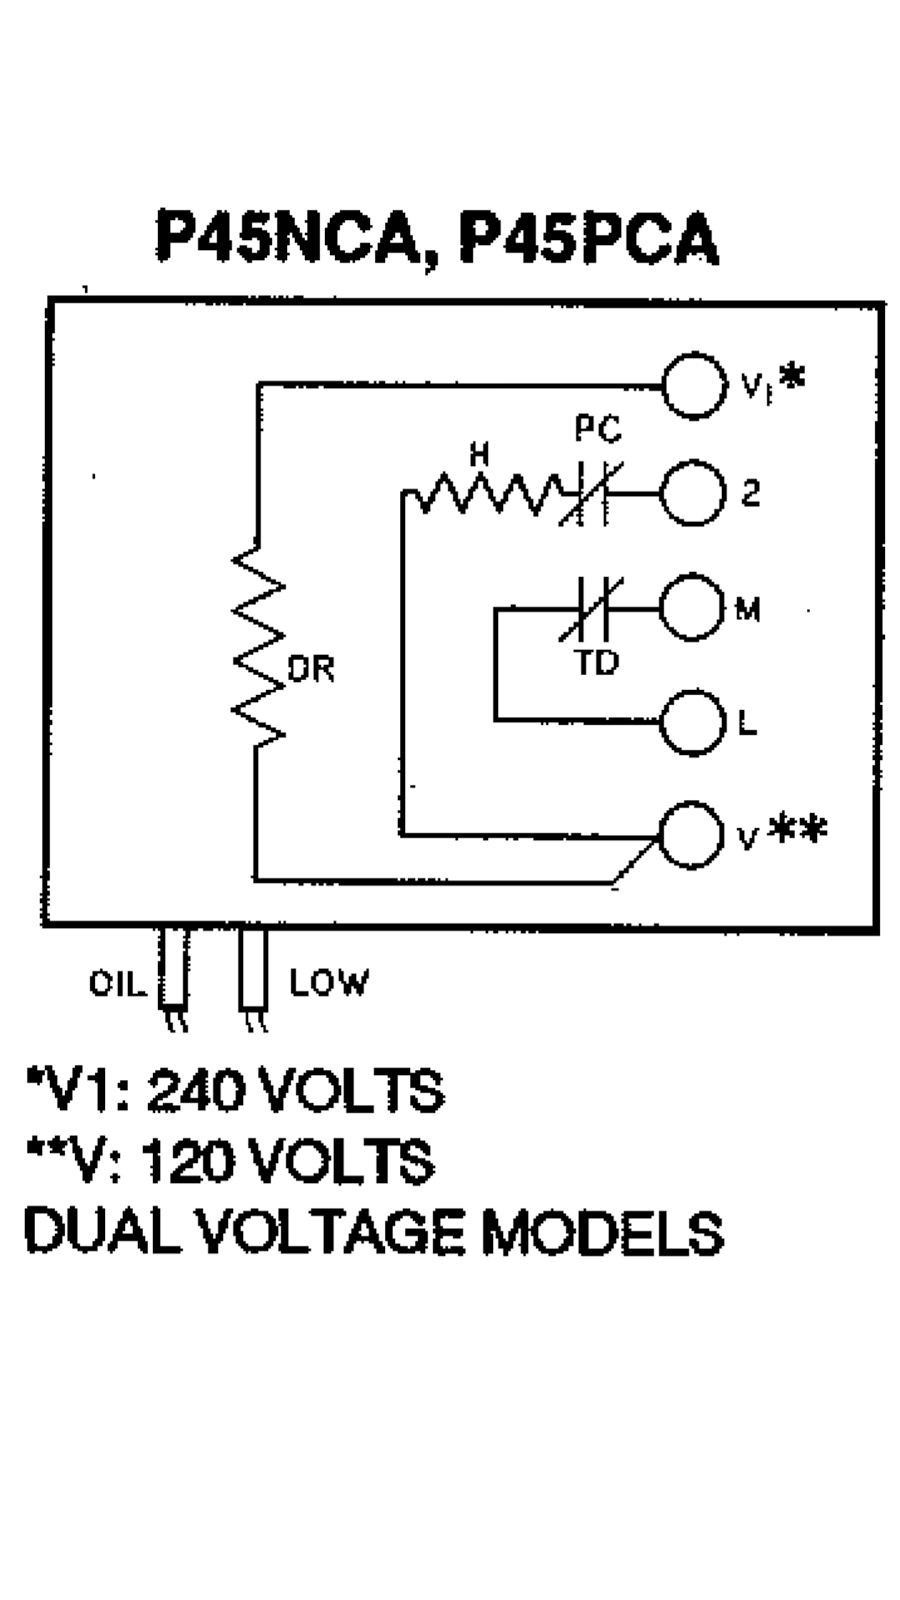 Mitsubishi Oil Gauge Wiring Diagram Diagrams Instruction For L200 The Same Switch In A Warm Ambient Is Going To Time Out Faster Than It Would Electrical